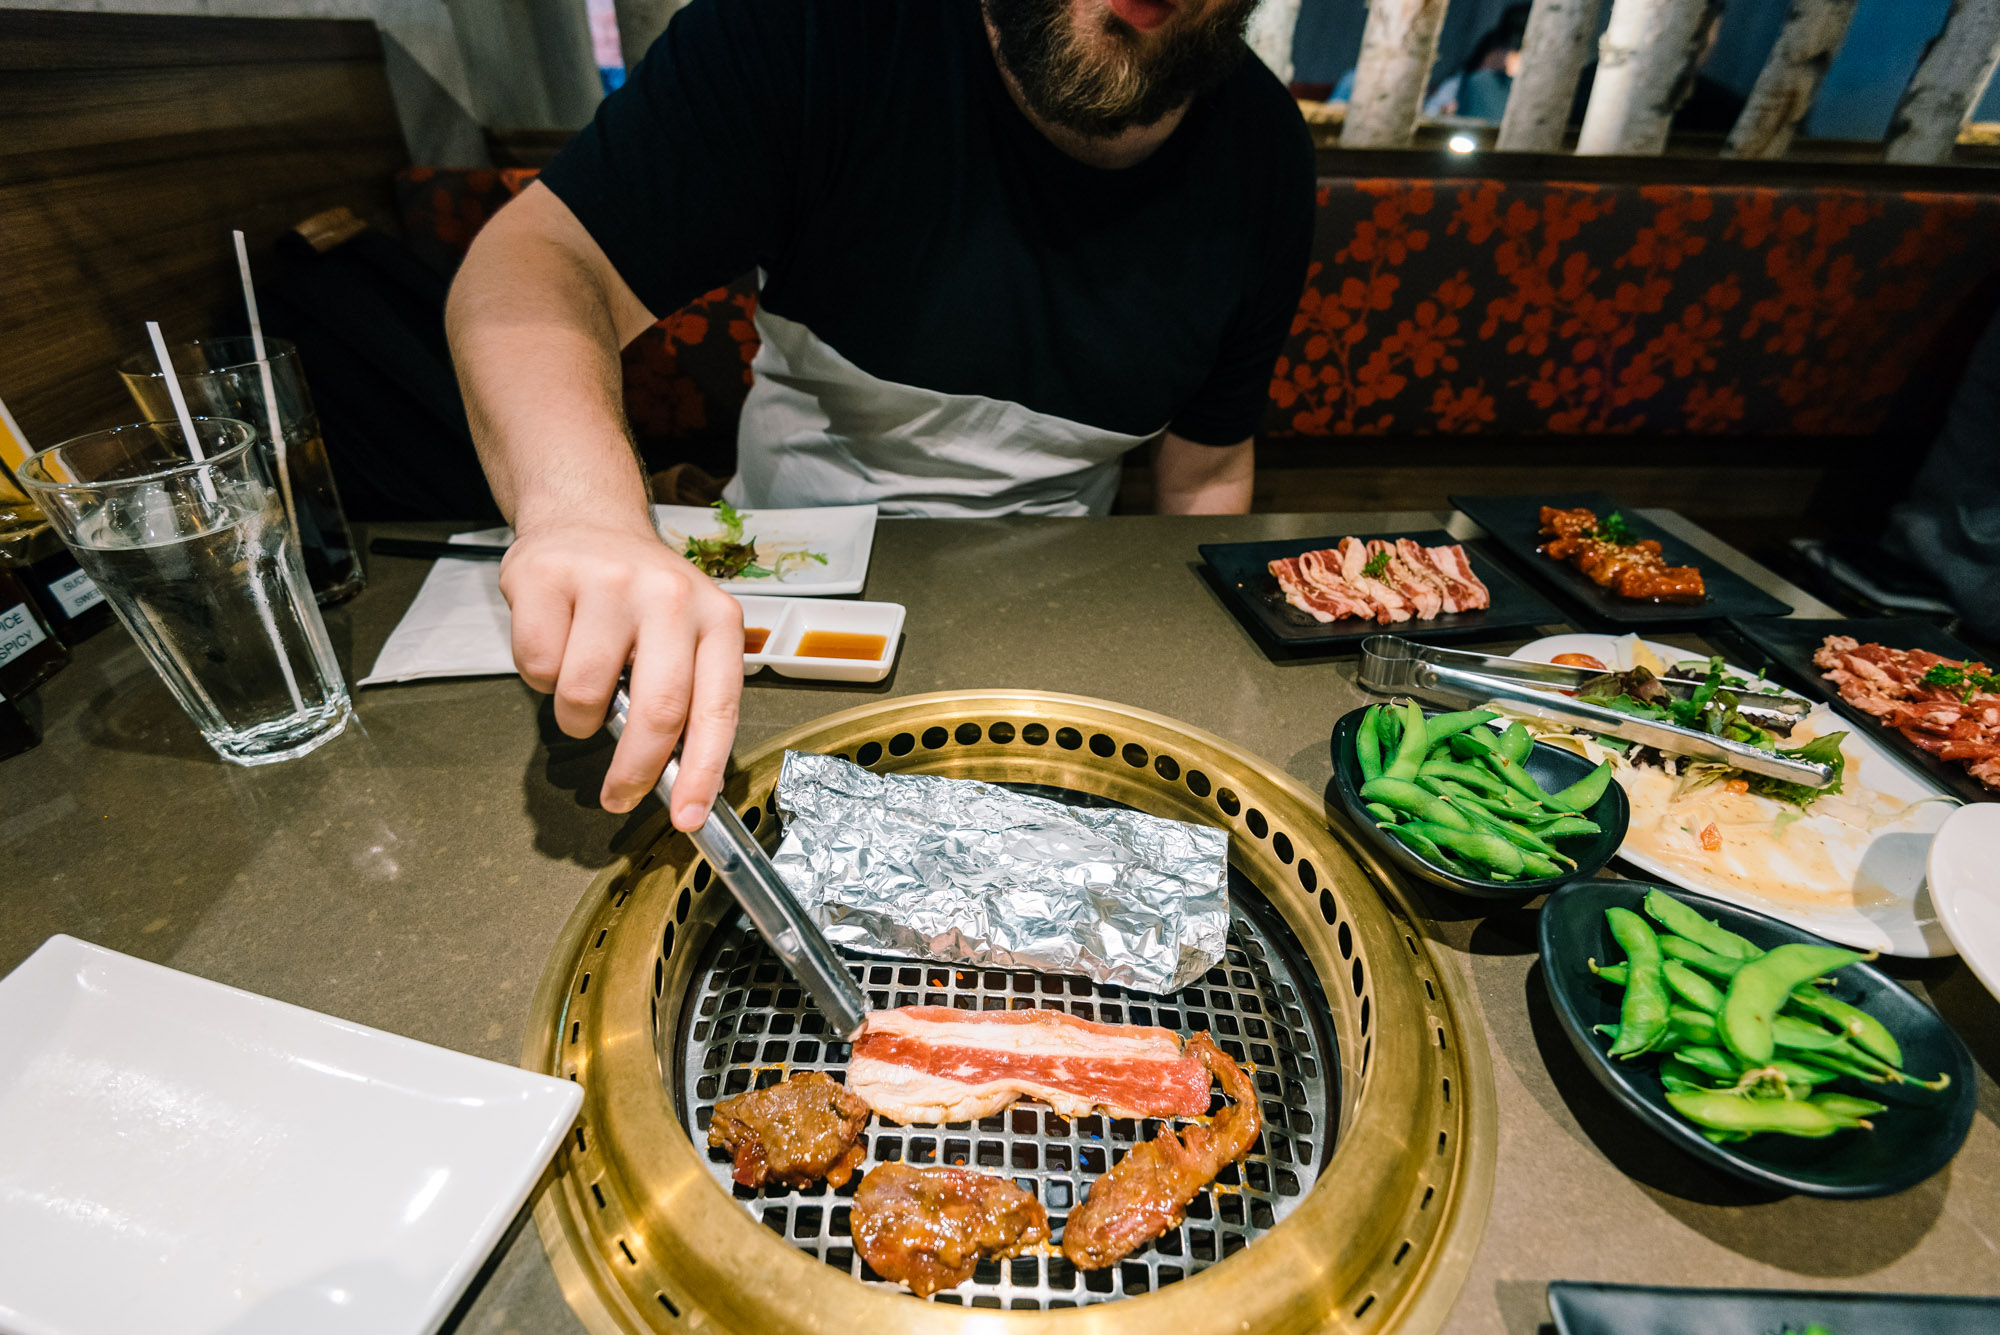 Jeff On The Road - Food - Montreal - Gyu-Kaku Japanese BBQ - All photos are under Copyright © 2017 Jeff Frenette Photography / dezjeff. To use the photos, please contact me at dezjeff@me.com.